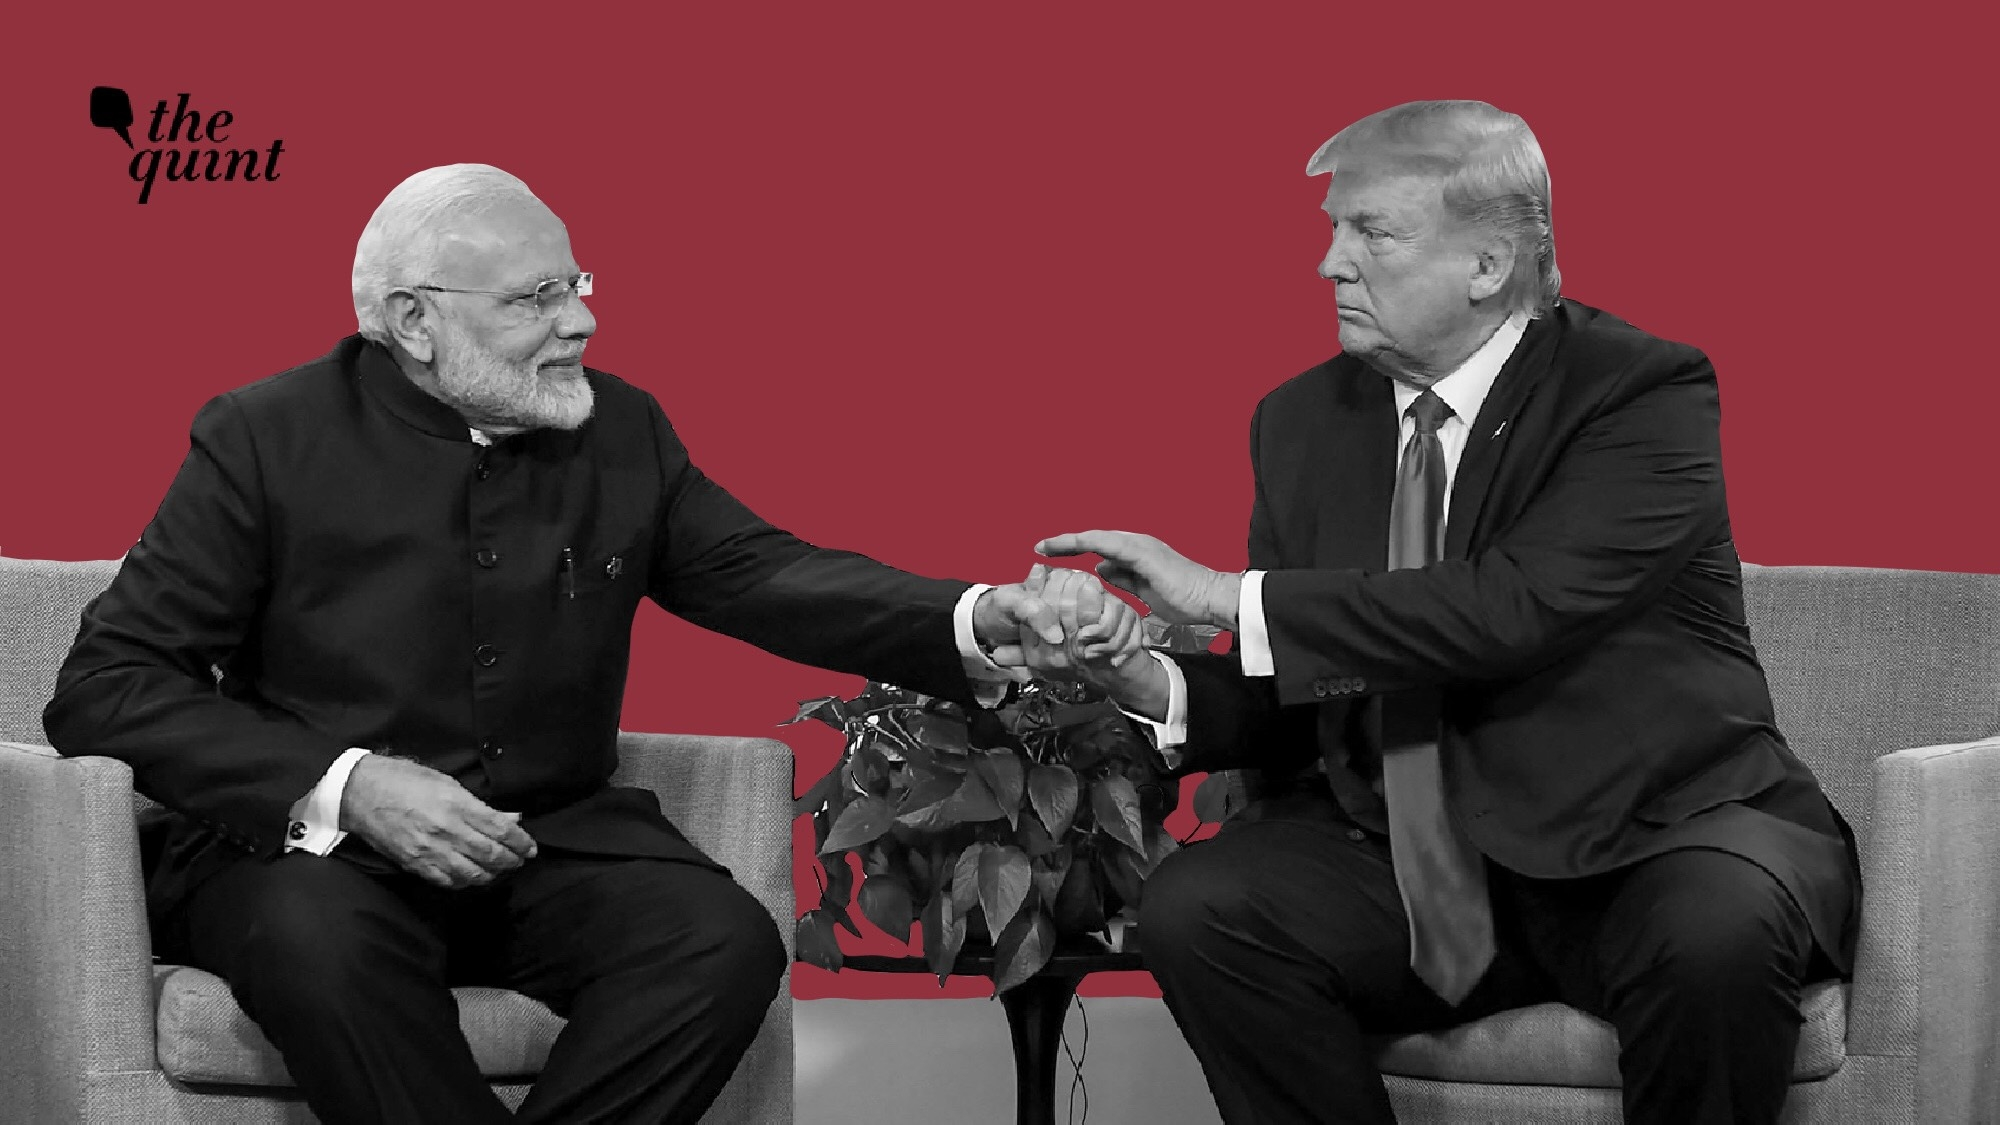 Unknown Group Organising Ahmedabad 'Namaste Trump' Event: Report